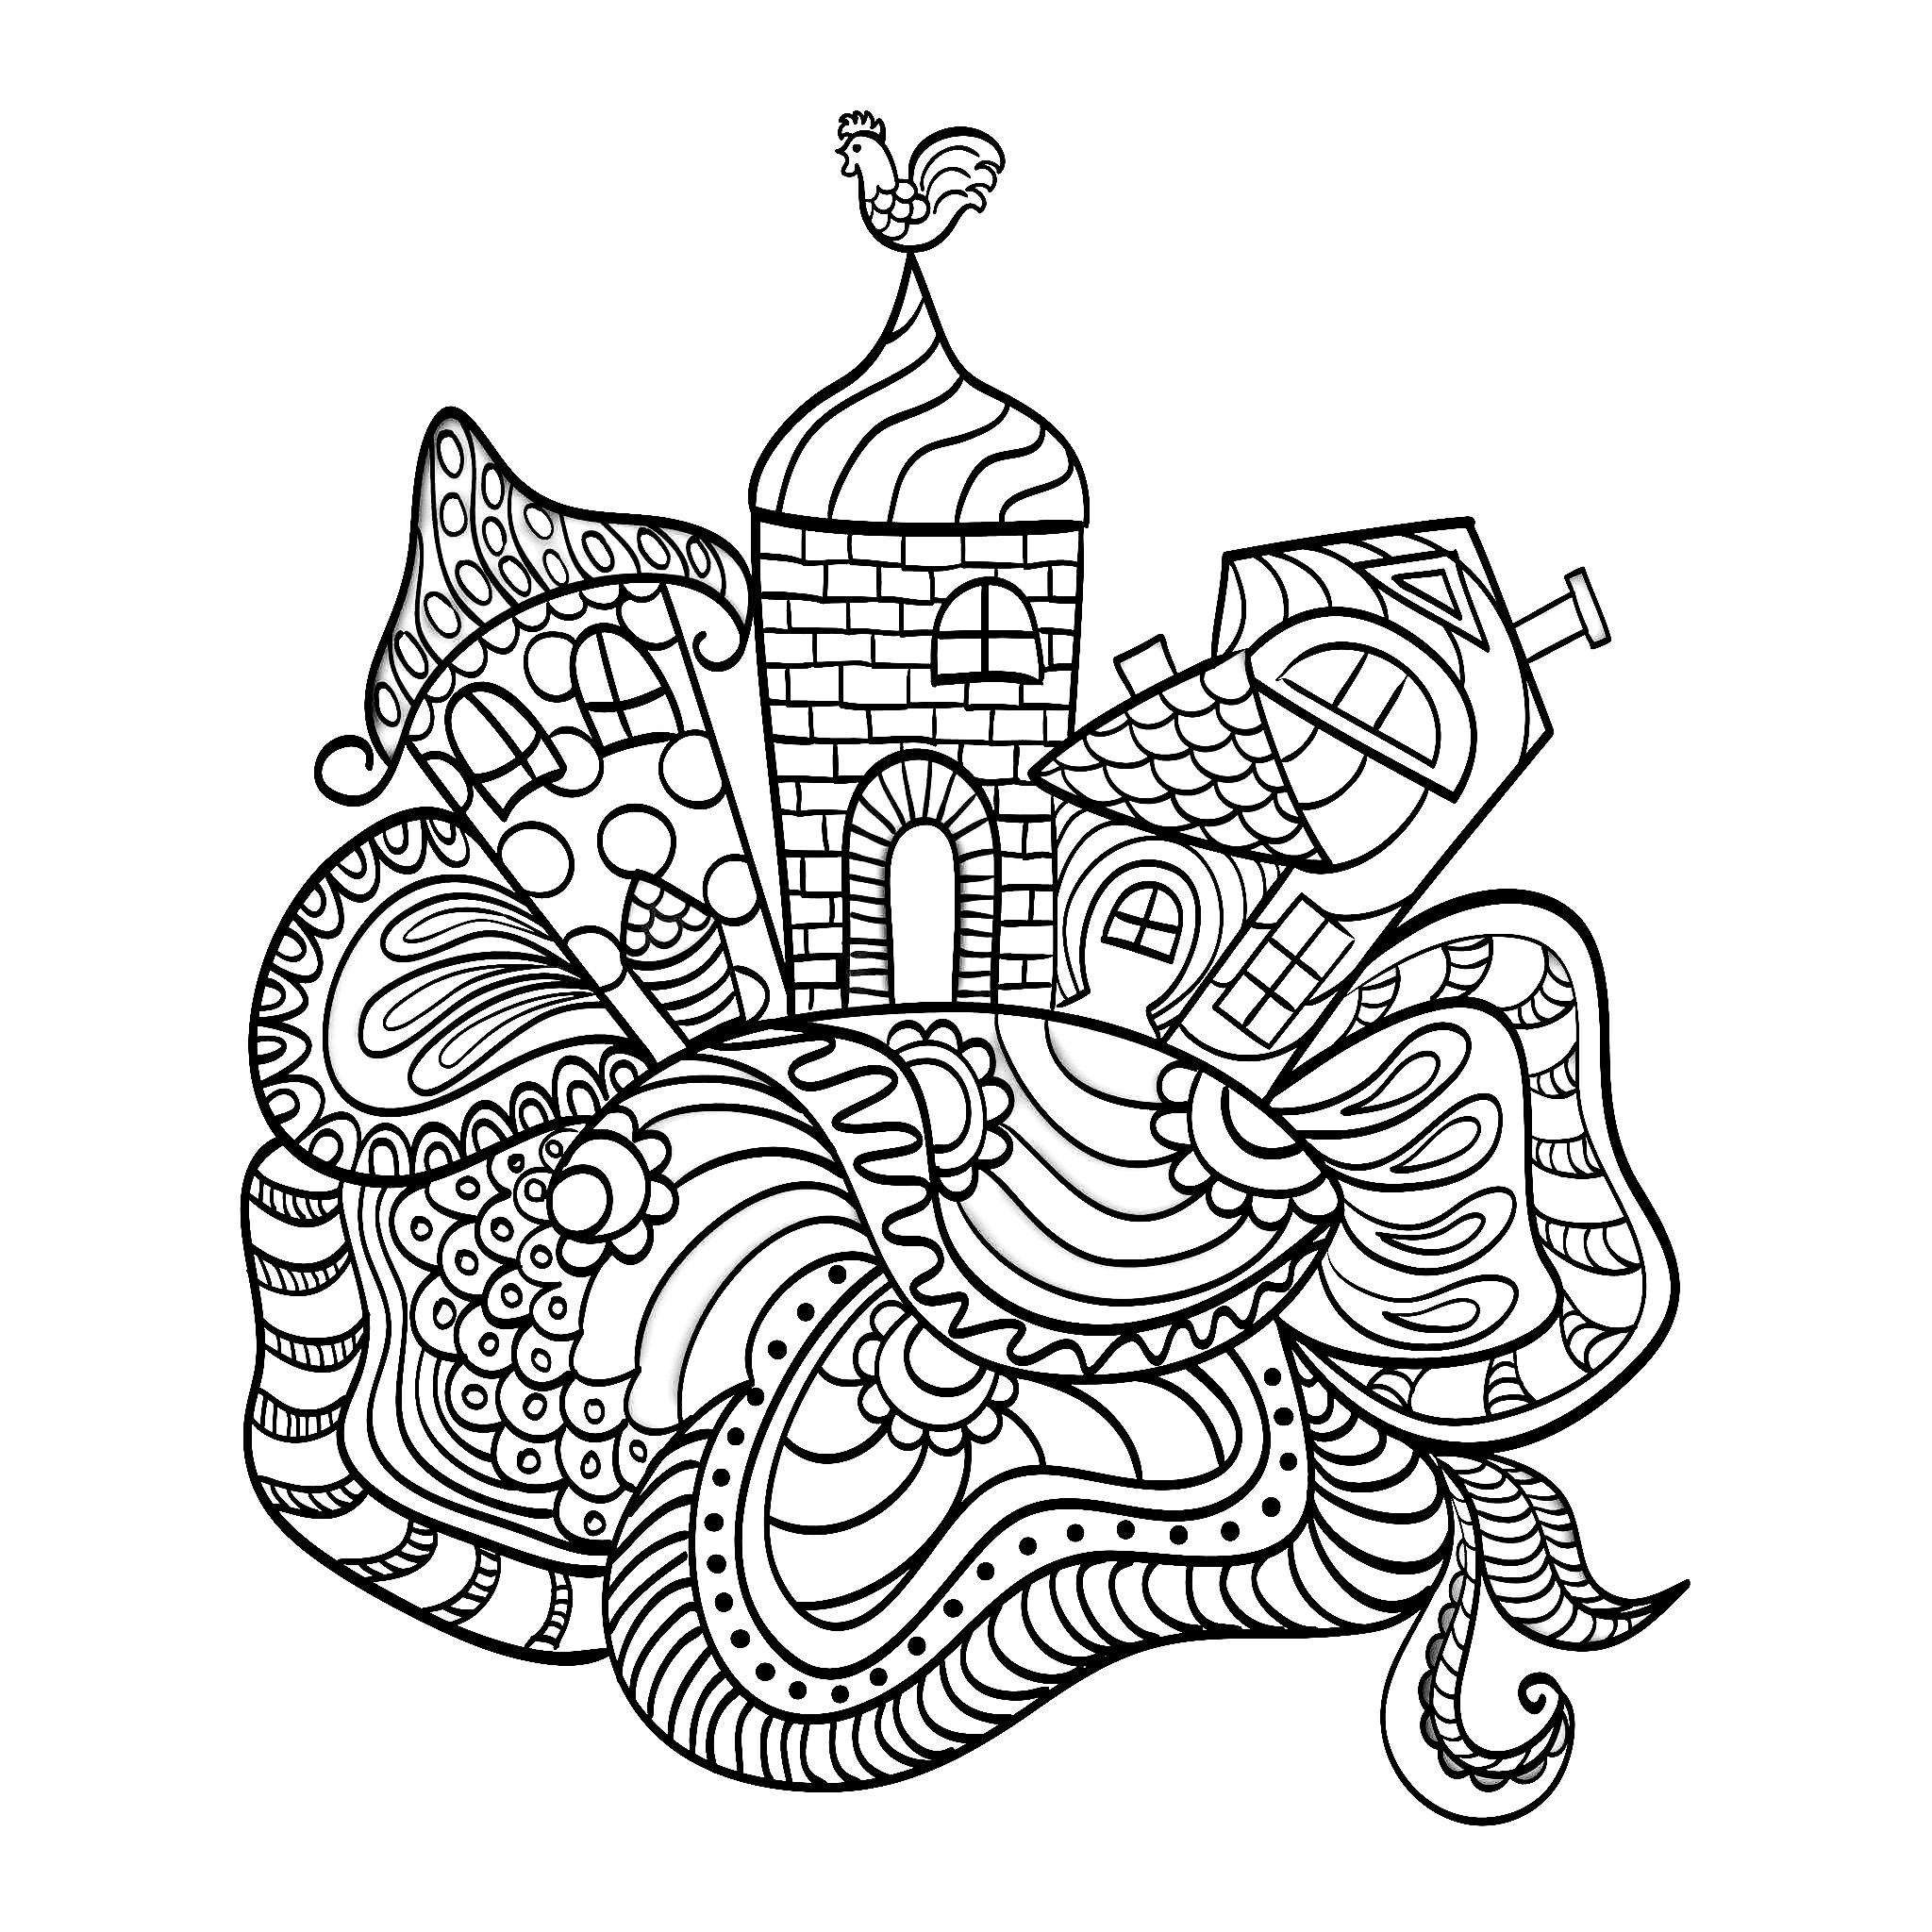 colouring pictures of houses house coloring pages to download and print for free of houses colouring pictures